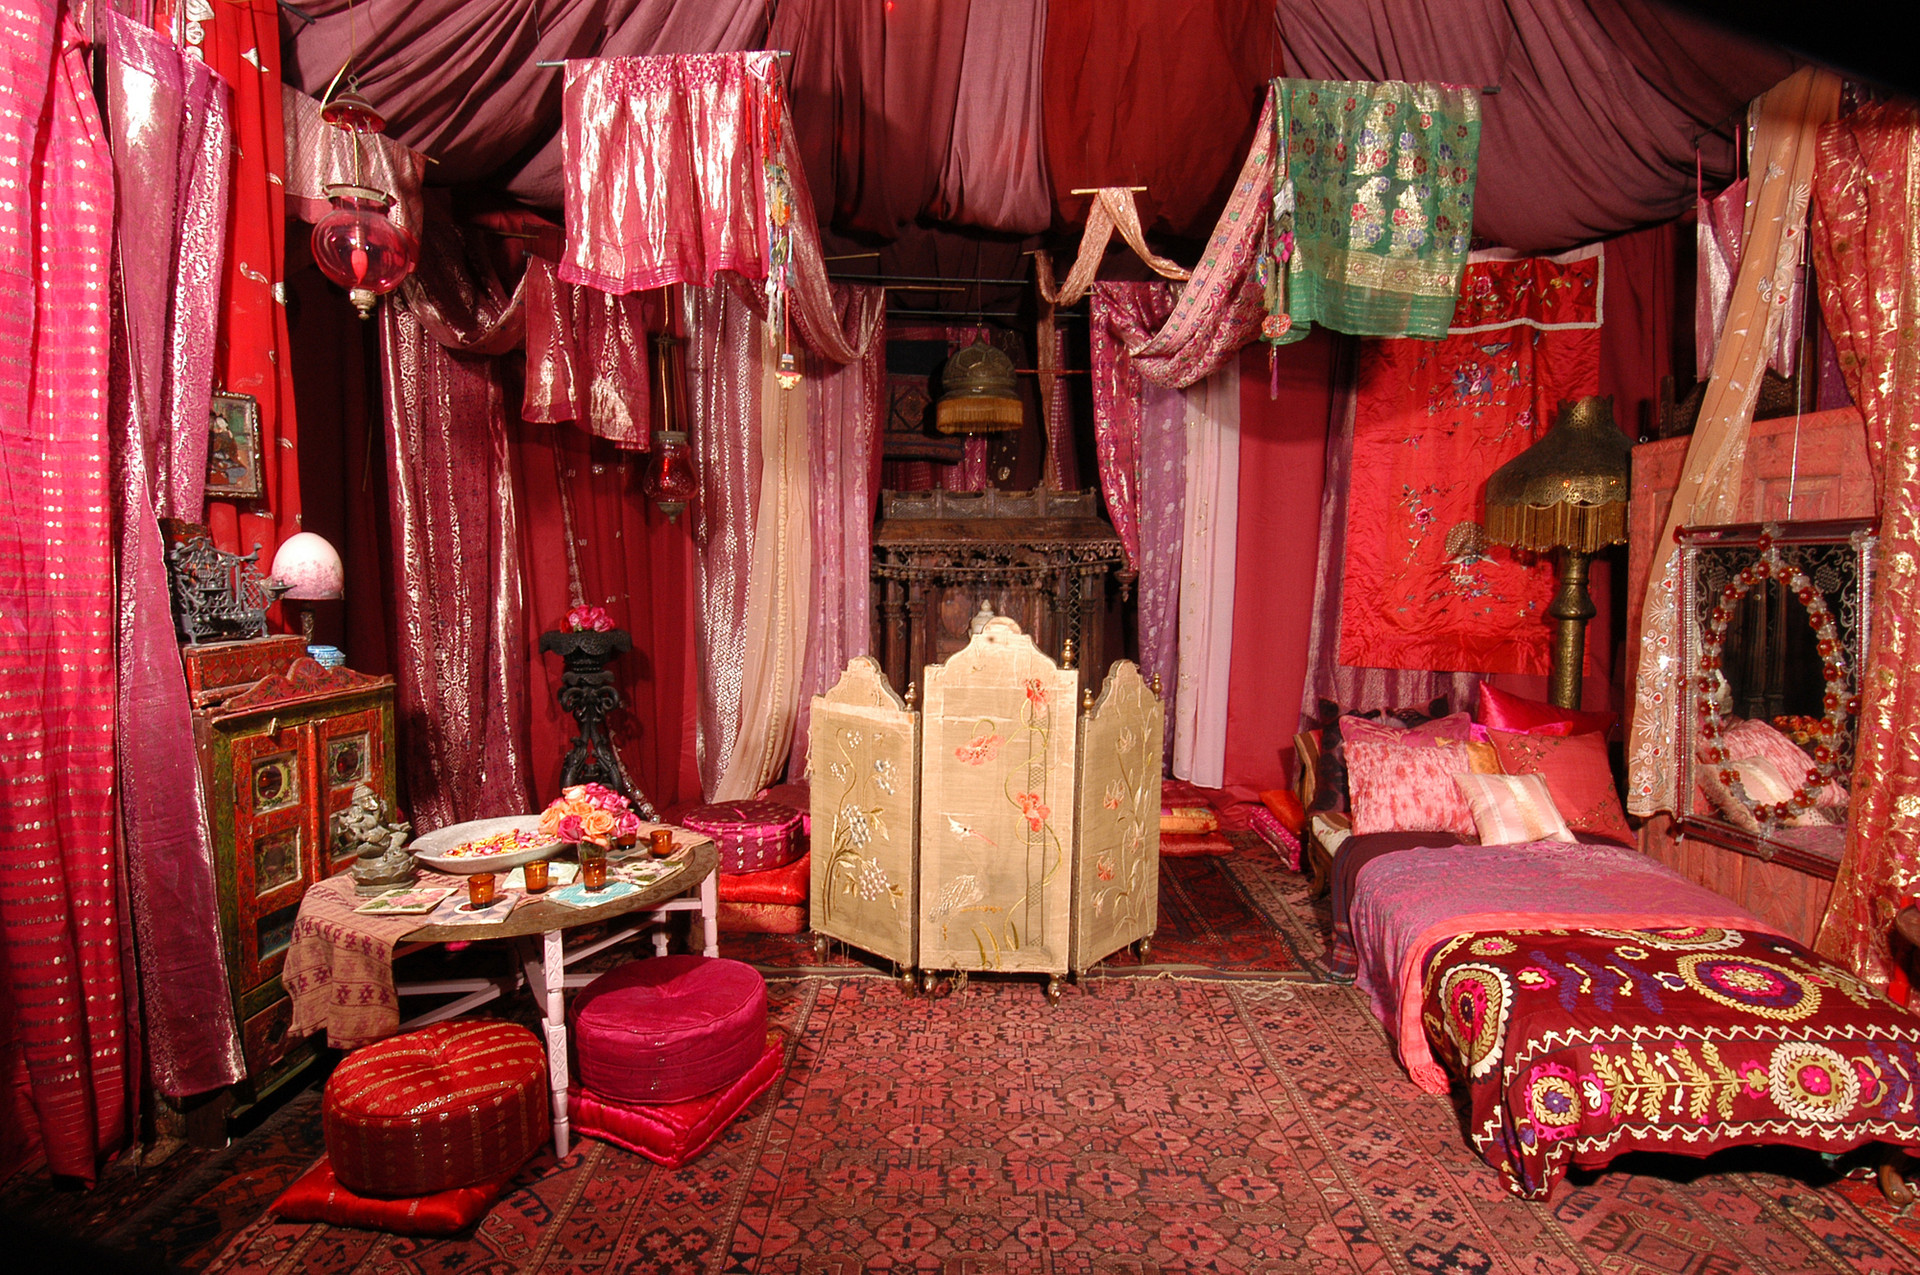 Red Tent at the ABC Carpet and Home Store